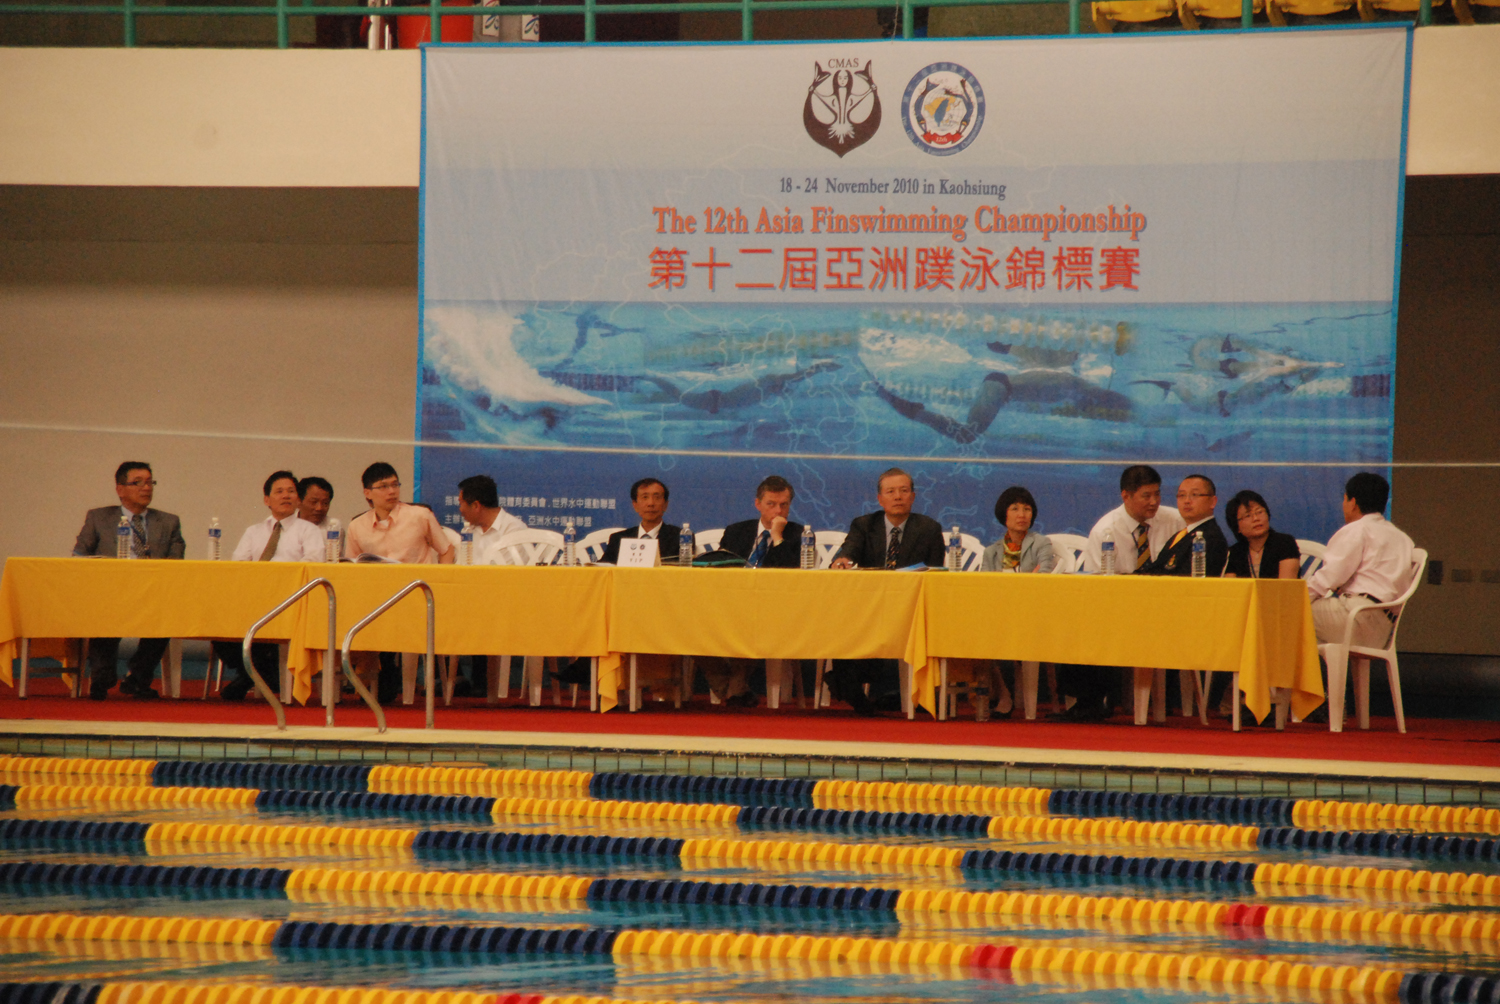 The 12th Asia Finswimming Championships